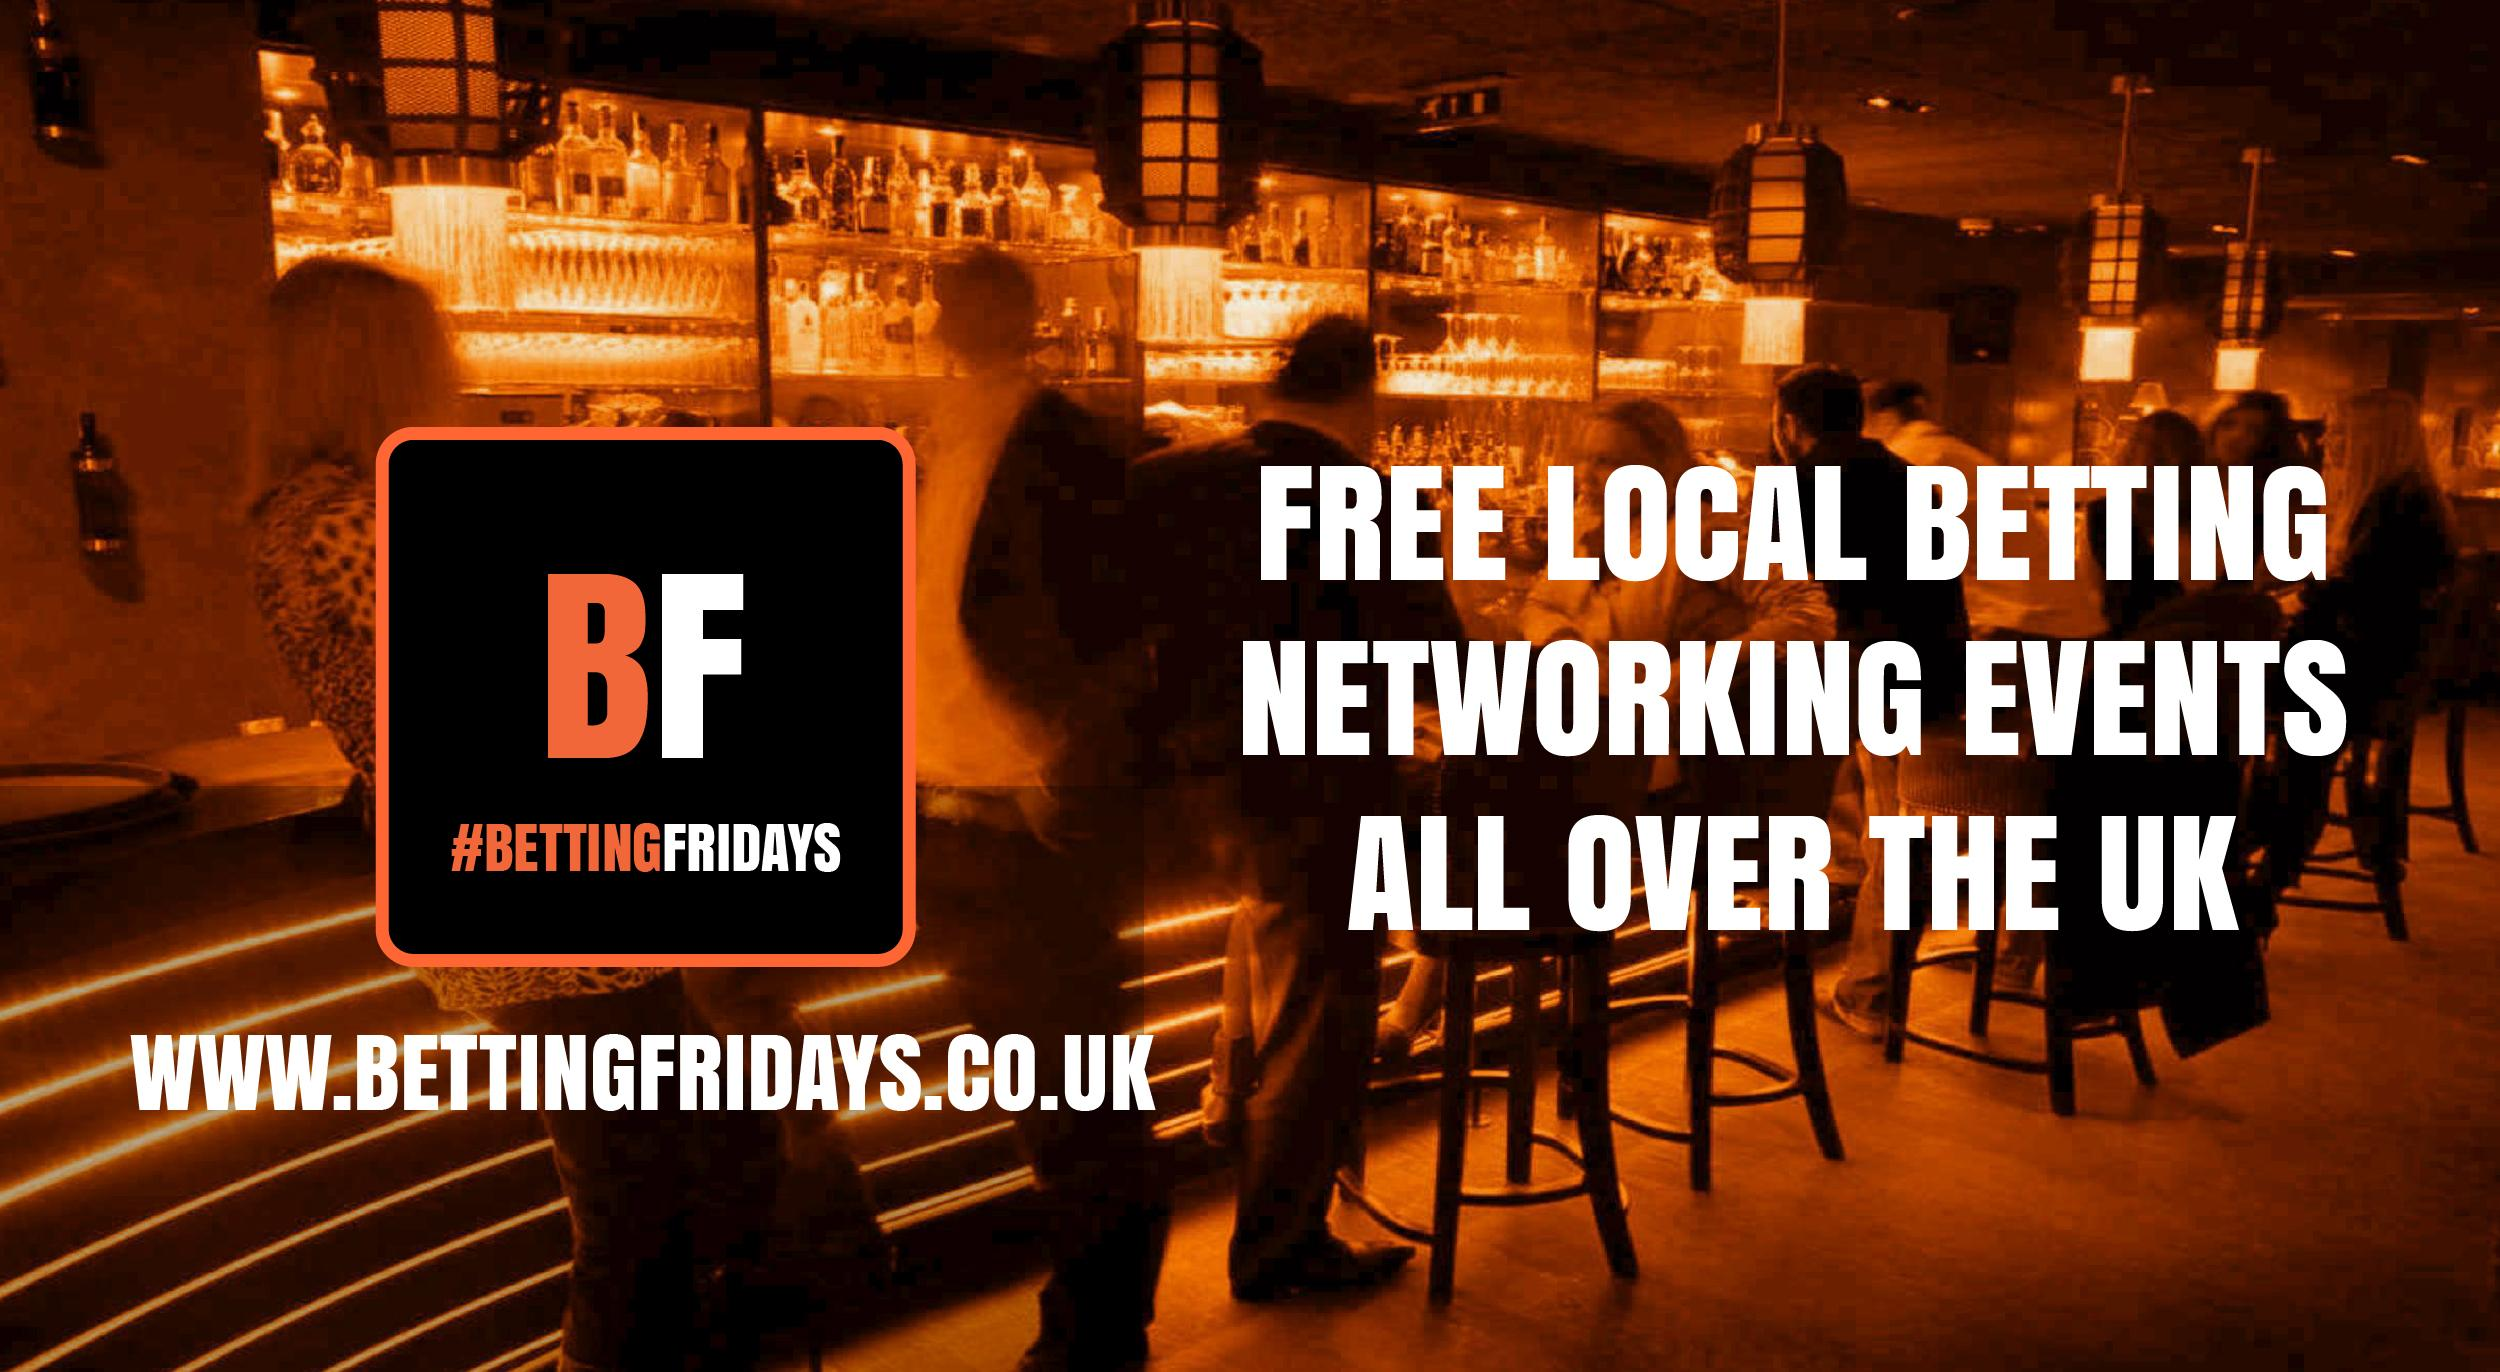 Betting Fridays! Free betting networking event in Sheffield